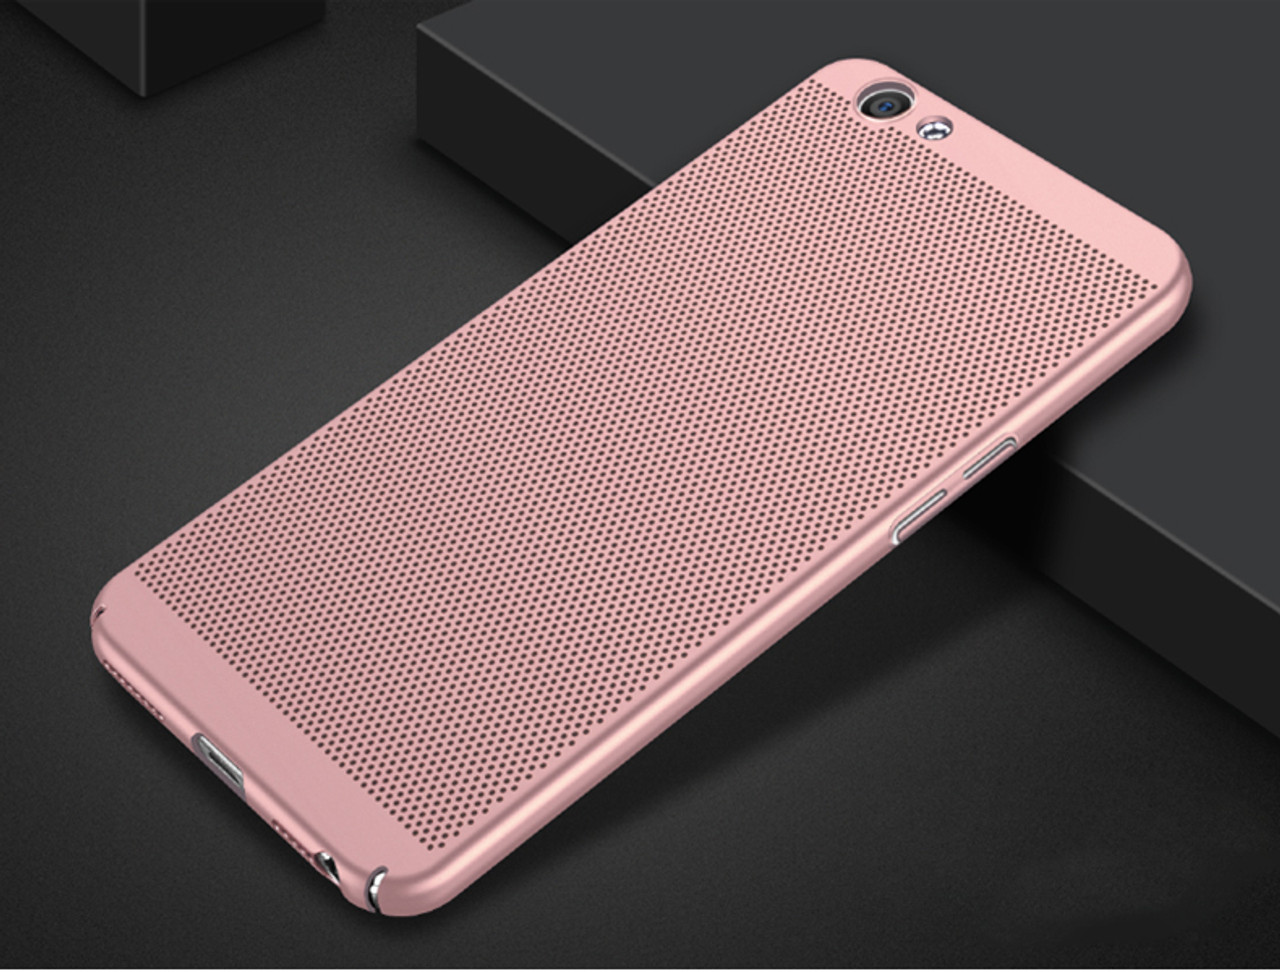 buy popular ee33e b908f luxury Matte cover OPPO A59 PC Heat dissipation case phone case for OPPO  F1s back case cover 5.5 inch funda OPPO F1s case